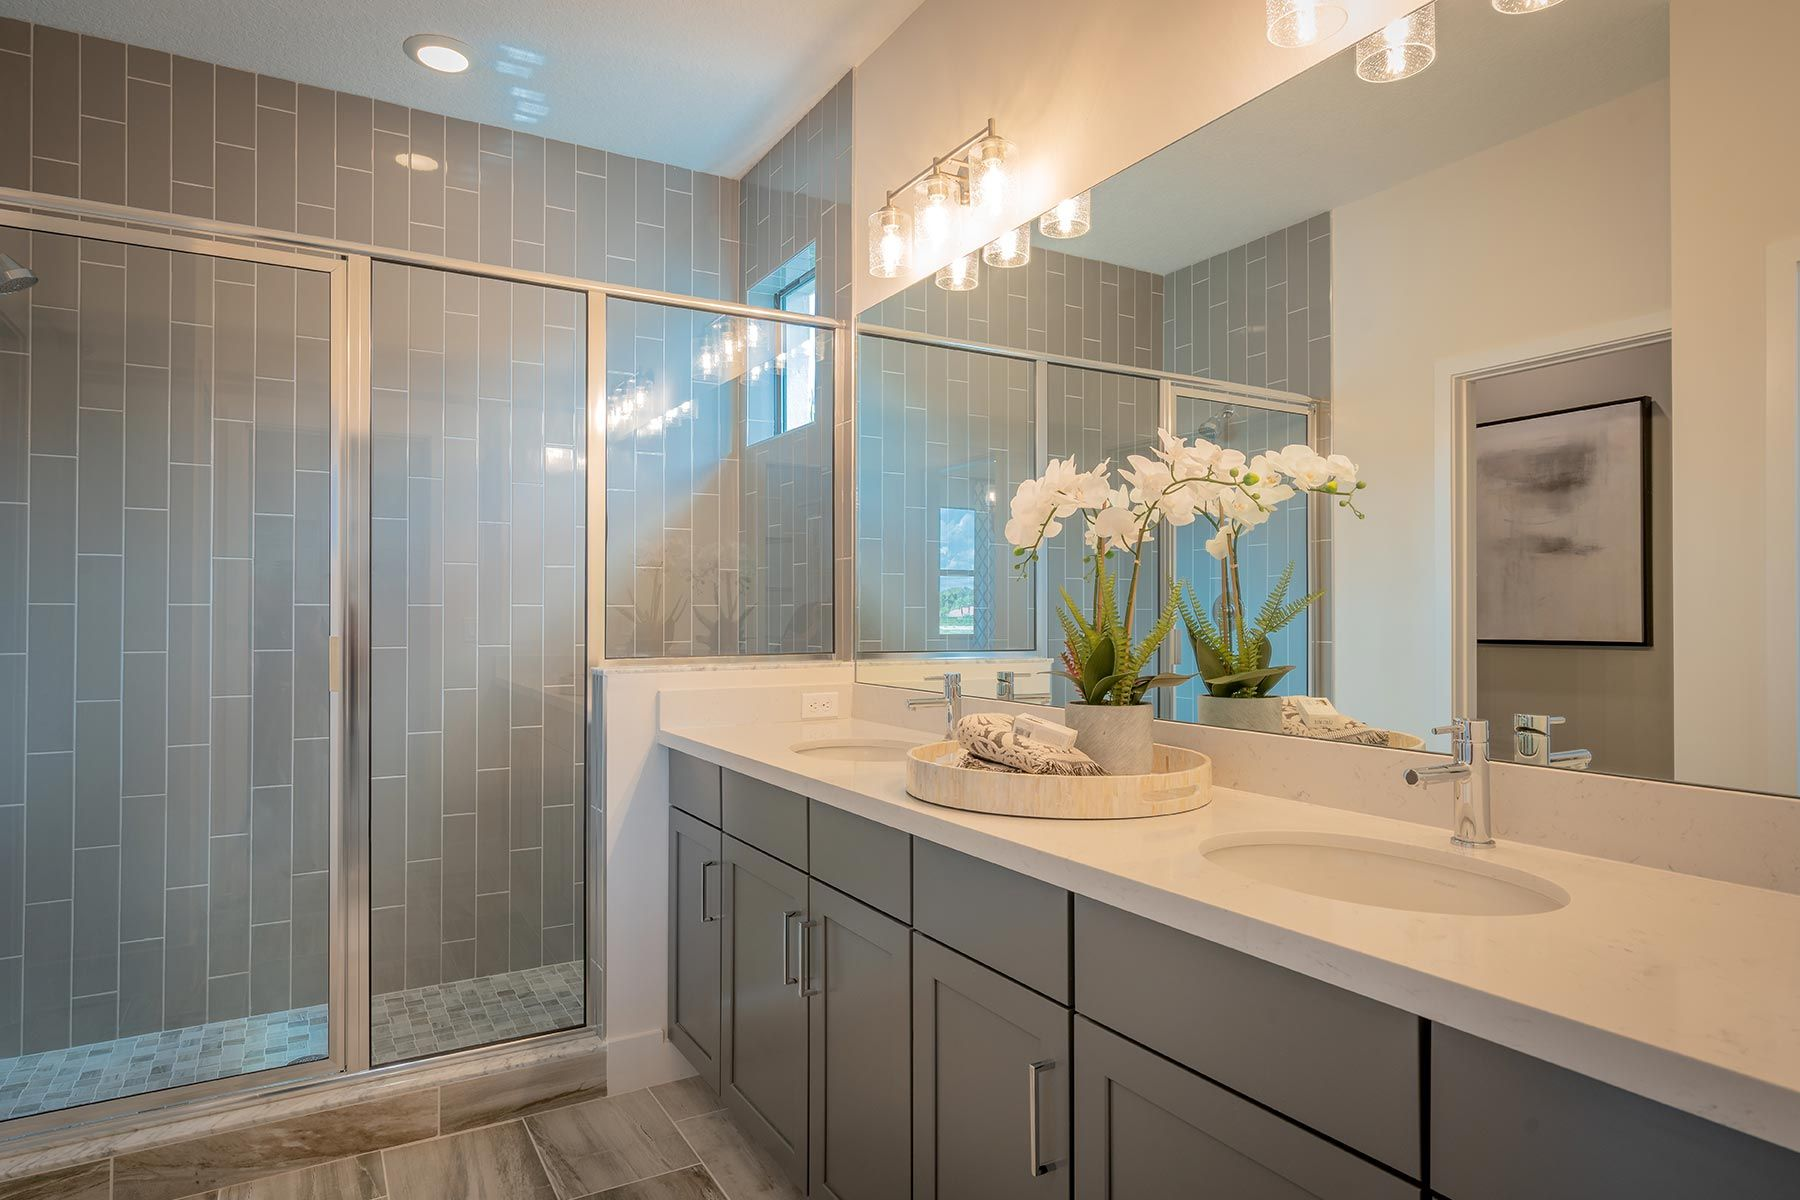 Bathroom featured in the Ellery By Mattamy Homes in Palm Beach County, FL